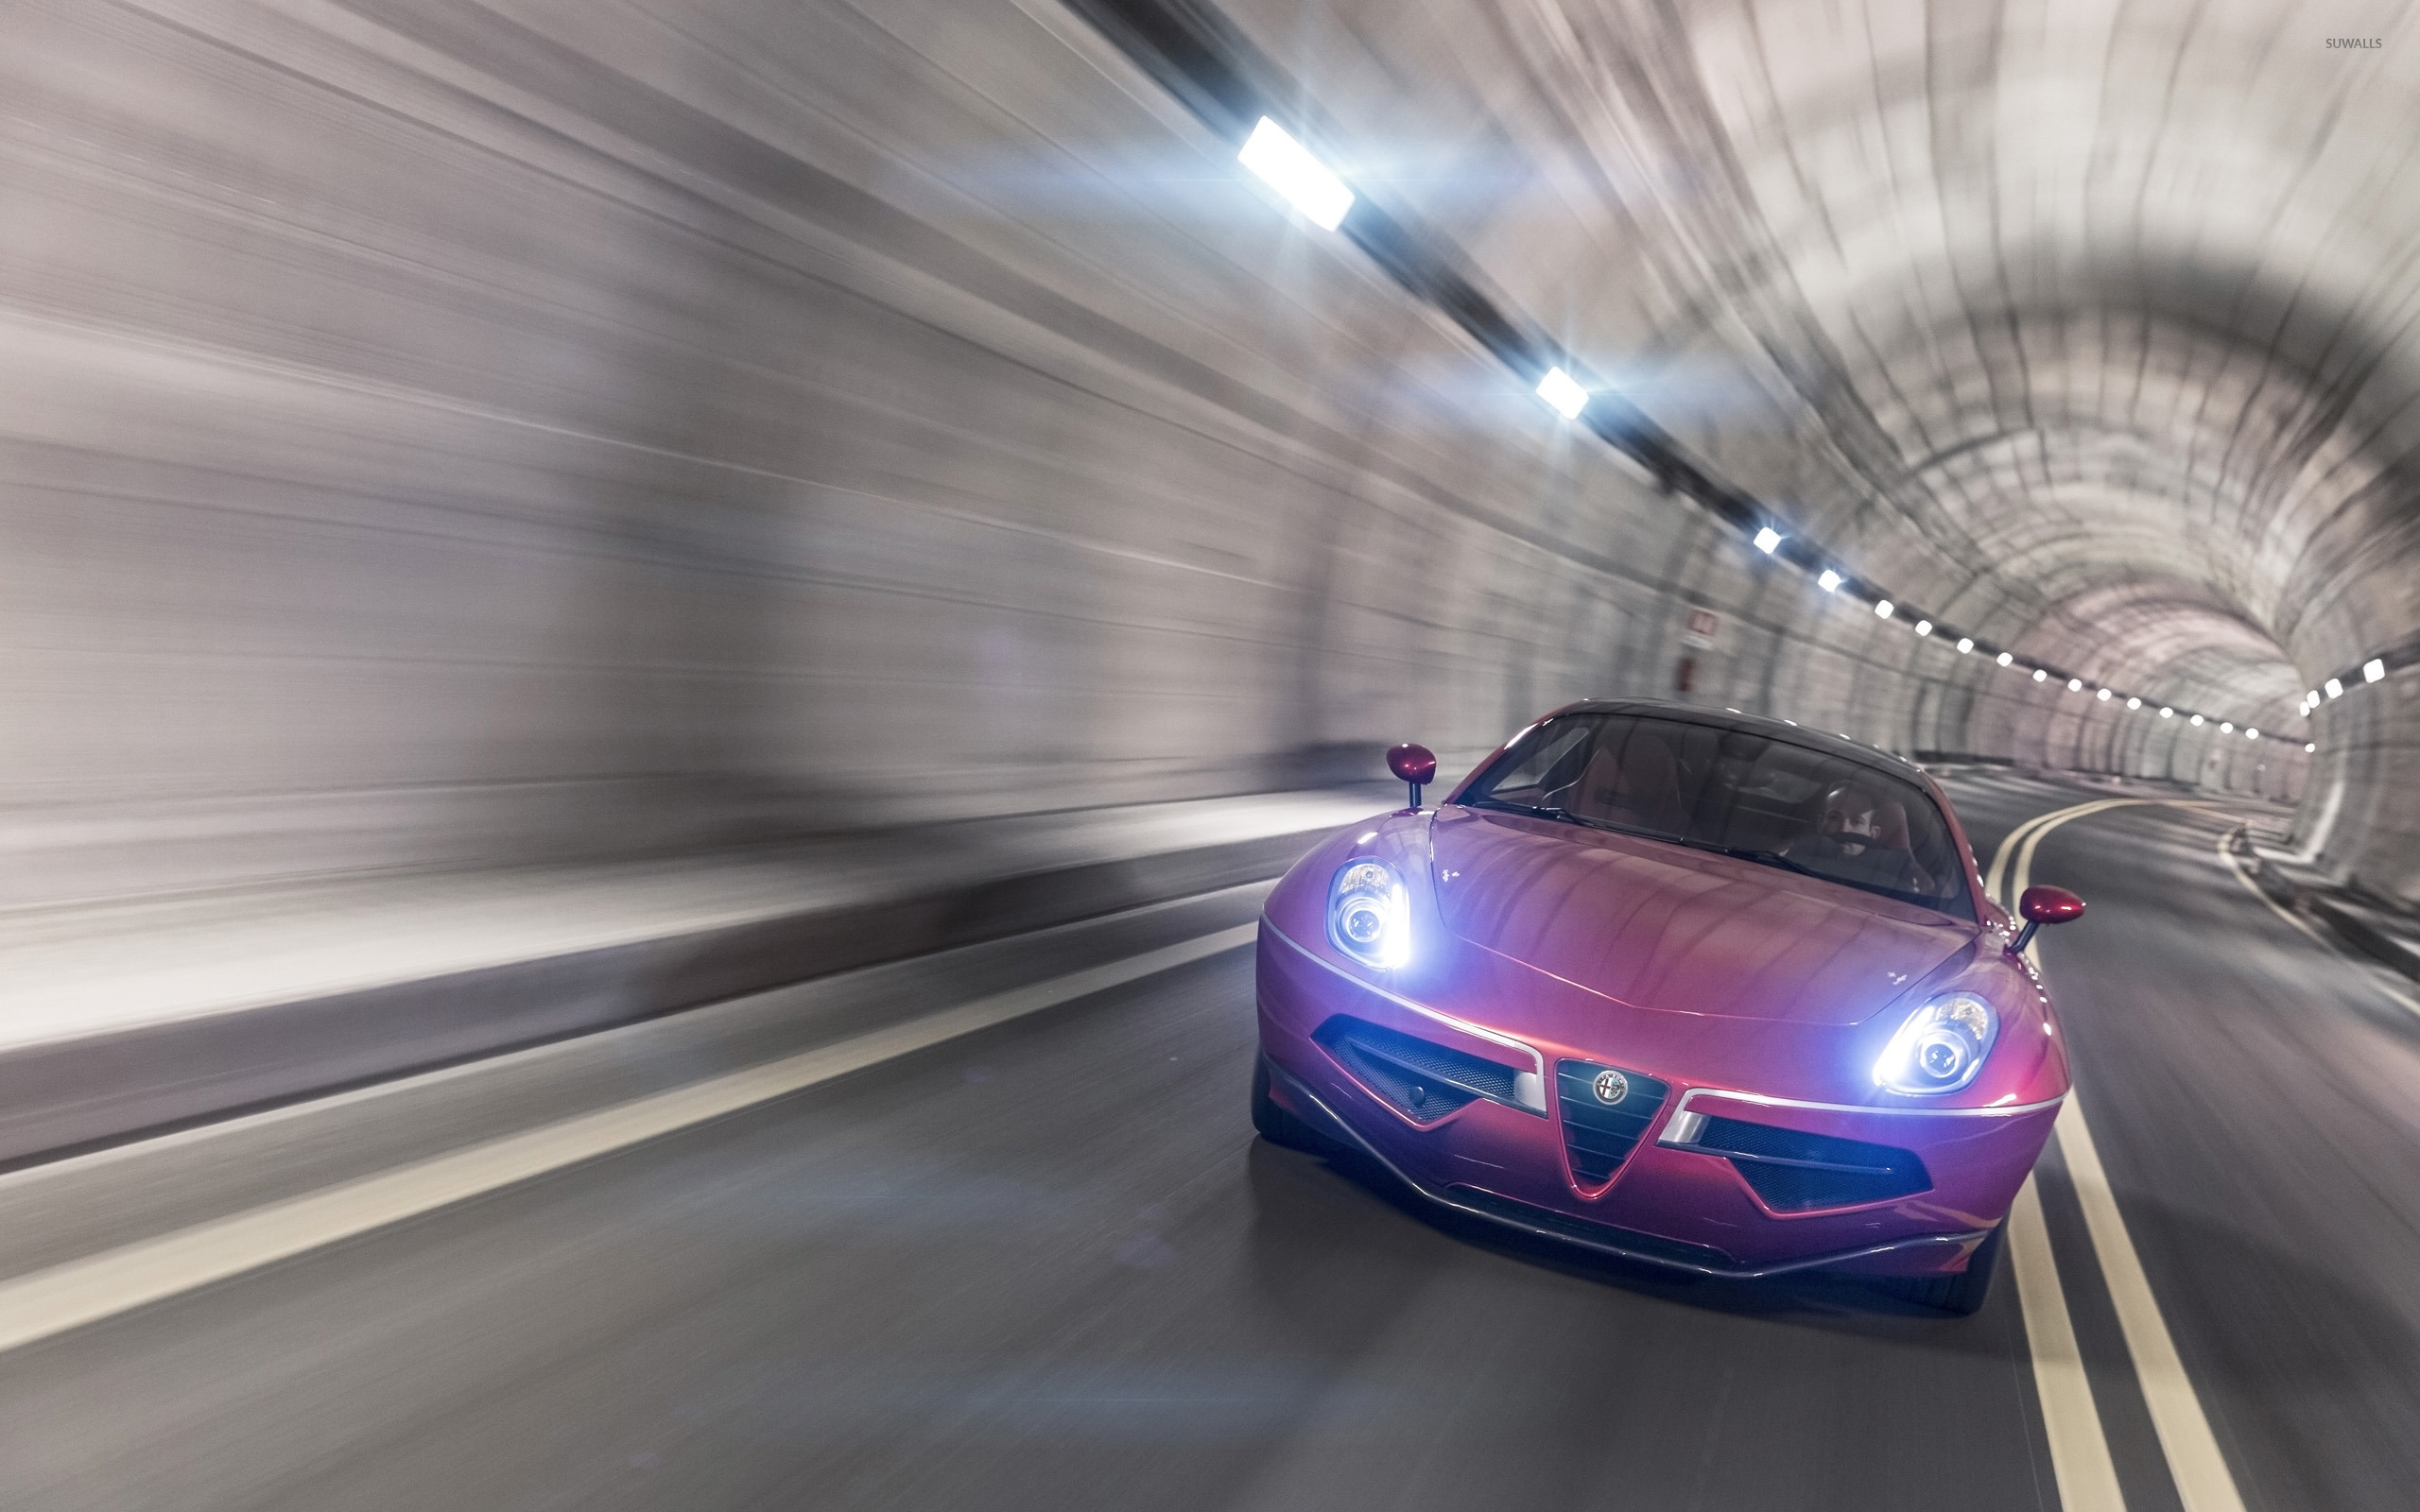 2012 Alfa Romeo Disco Volante Wallpaper